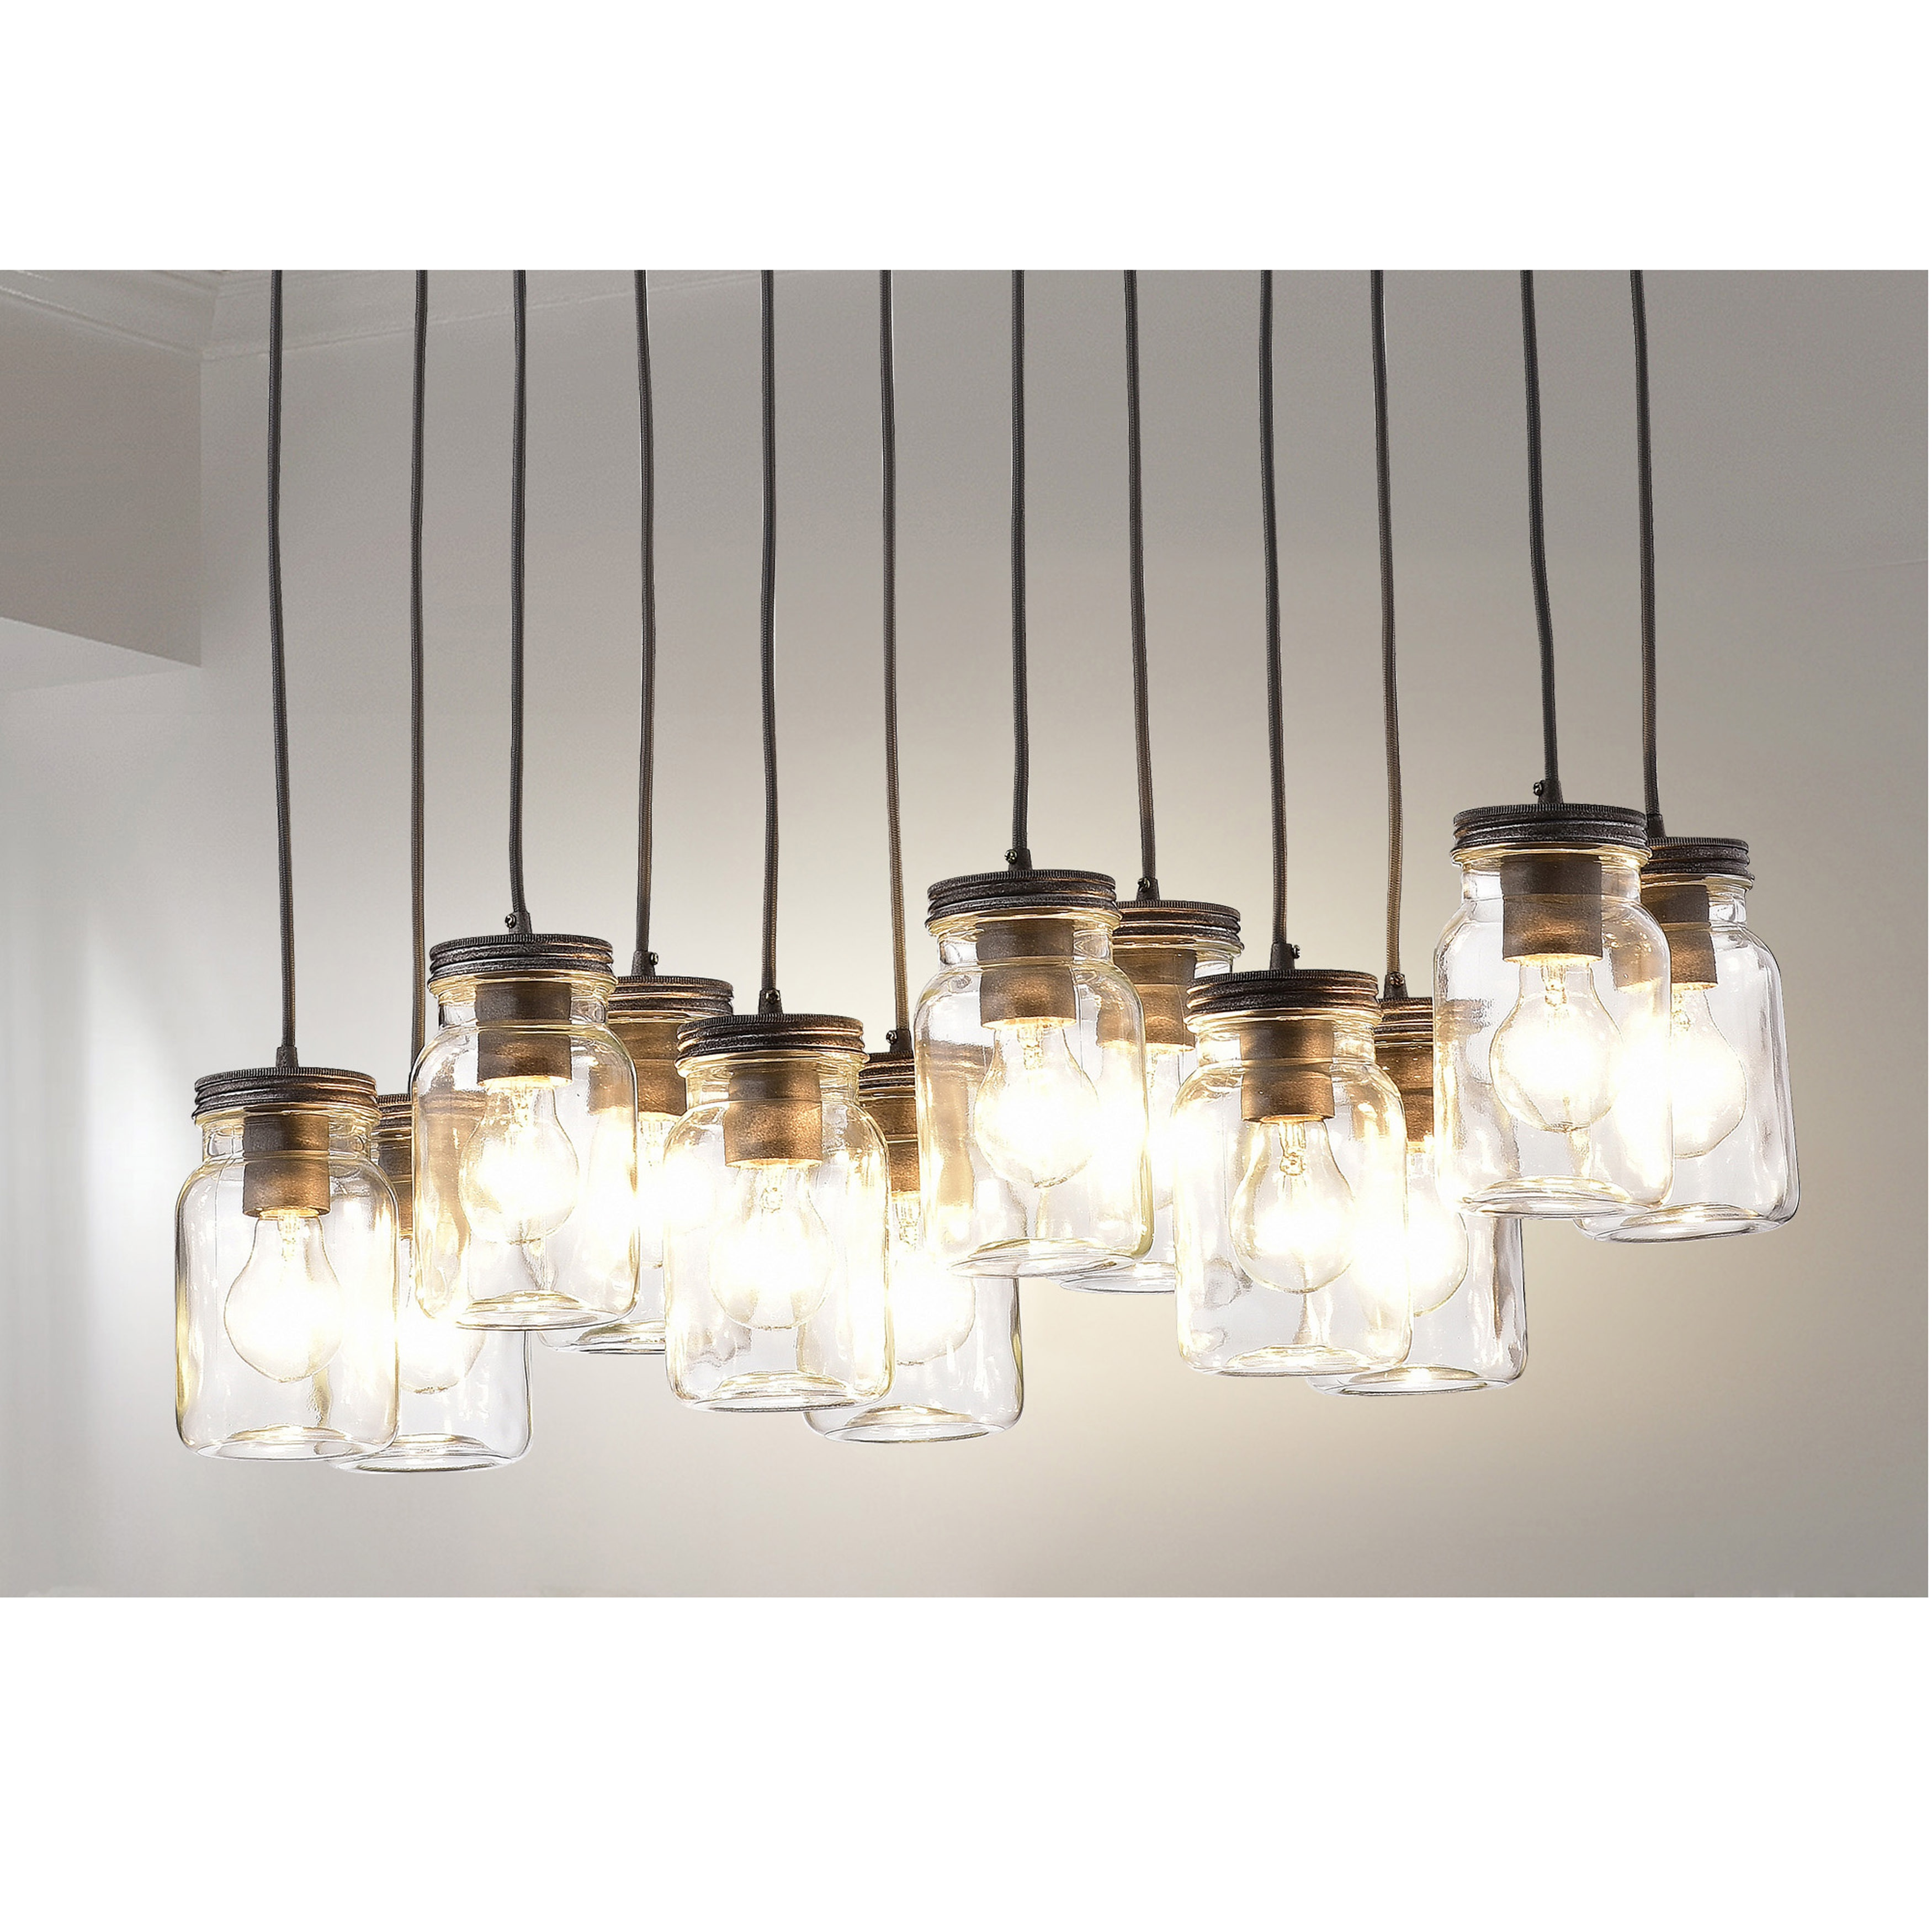 Belinda 12-light Clear Glass Canning Jar Pendant Chandelier - Free Shipping  Today - Overstock.com - 21150437